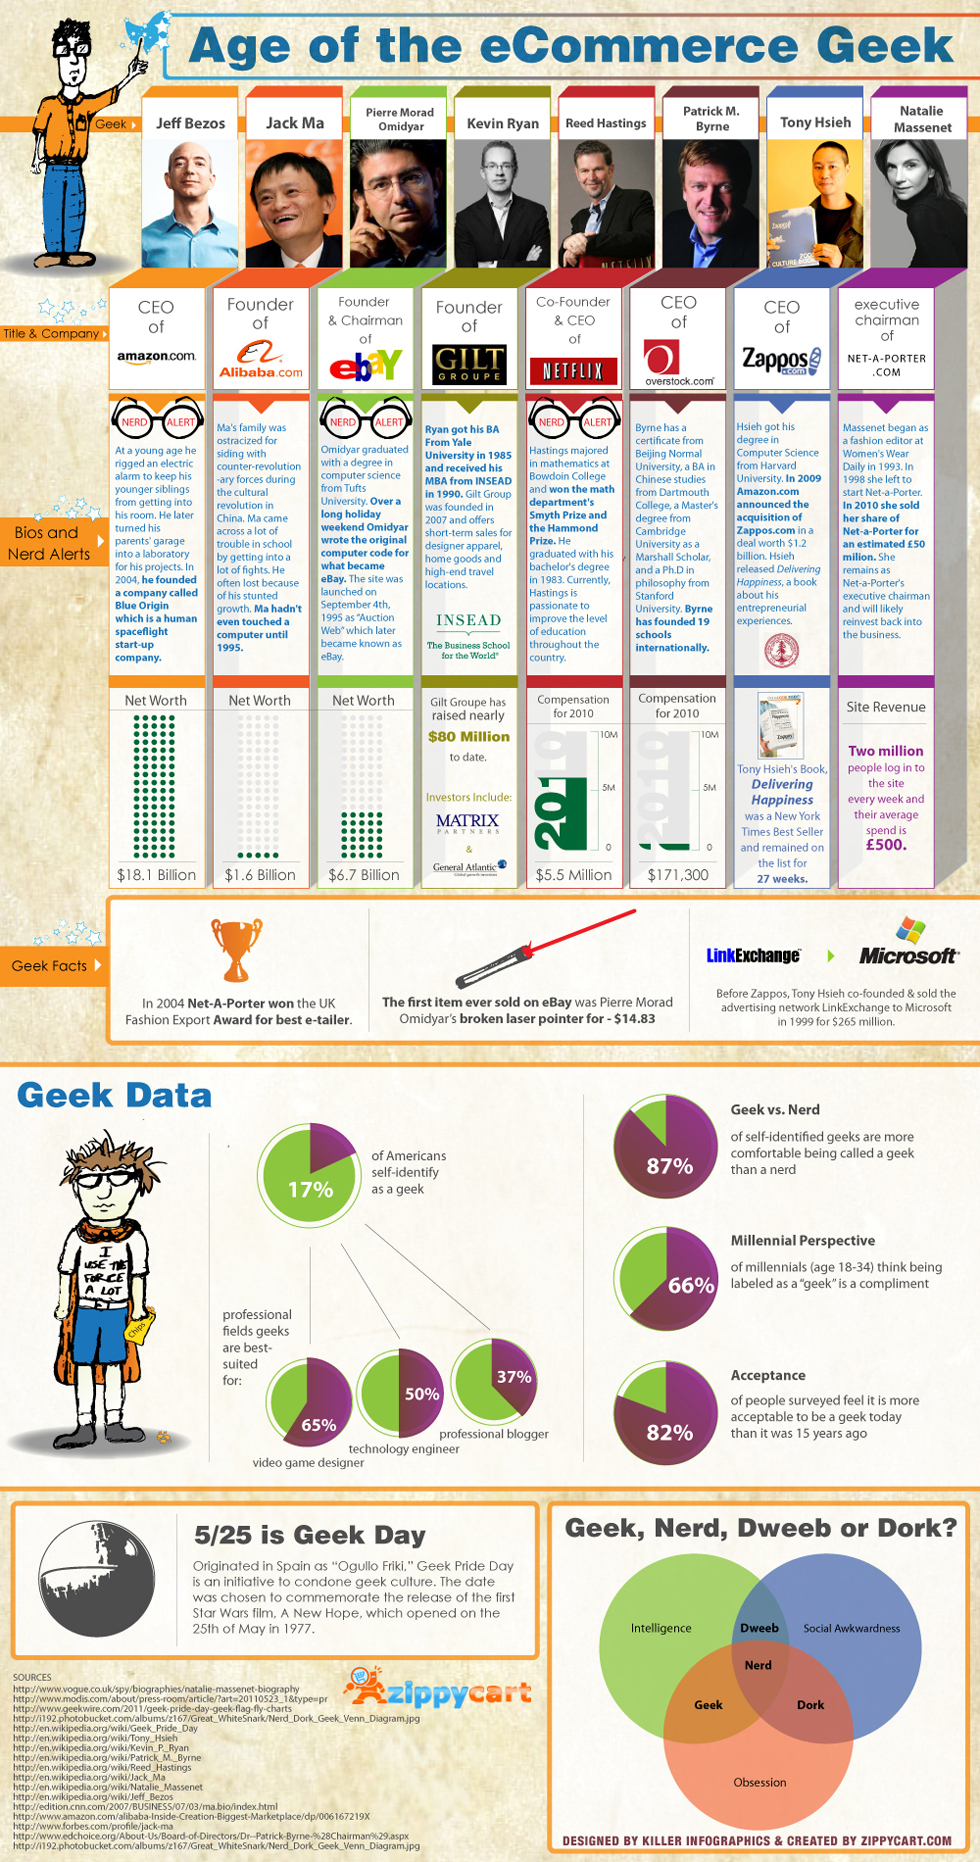 The Age of the Ecommerce Geek